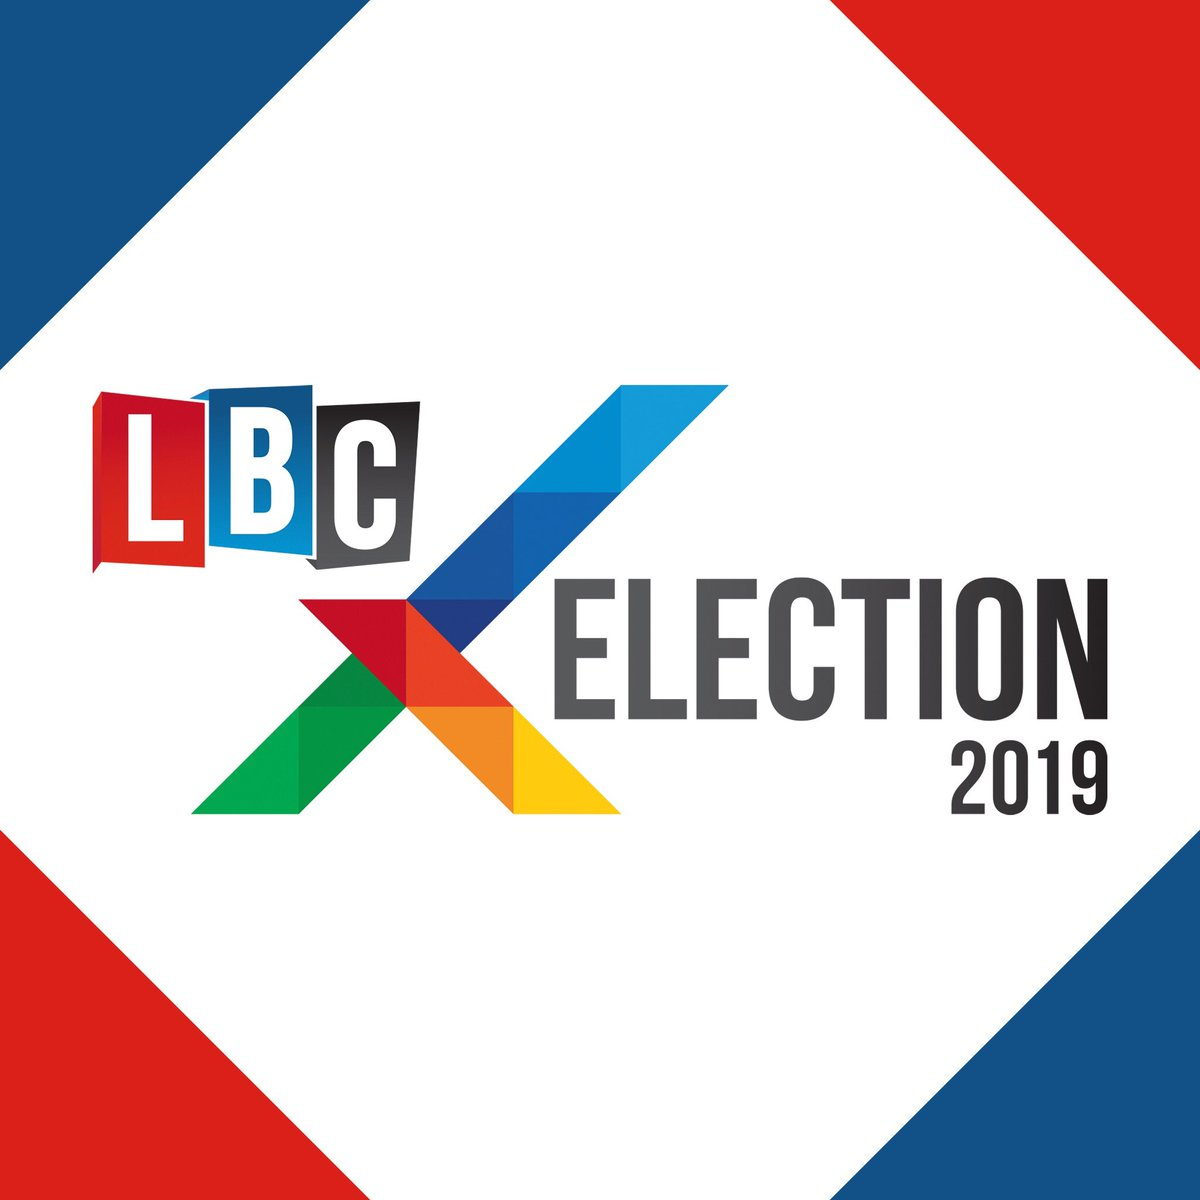 Delighted that Professor Sir John Curtice will be joining me live in the studio to preview and commentate on the ITV leaders debate from 7.45 tonight on LBC! #greatguestget